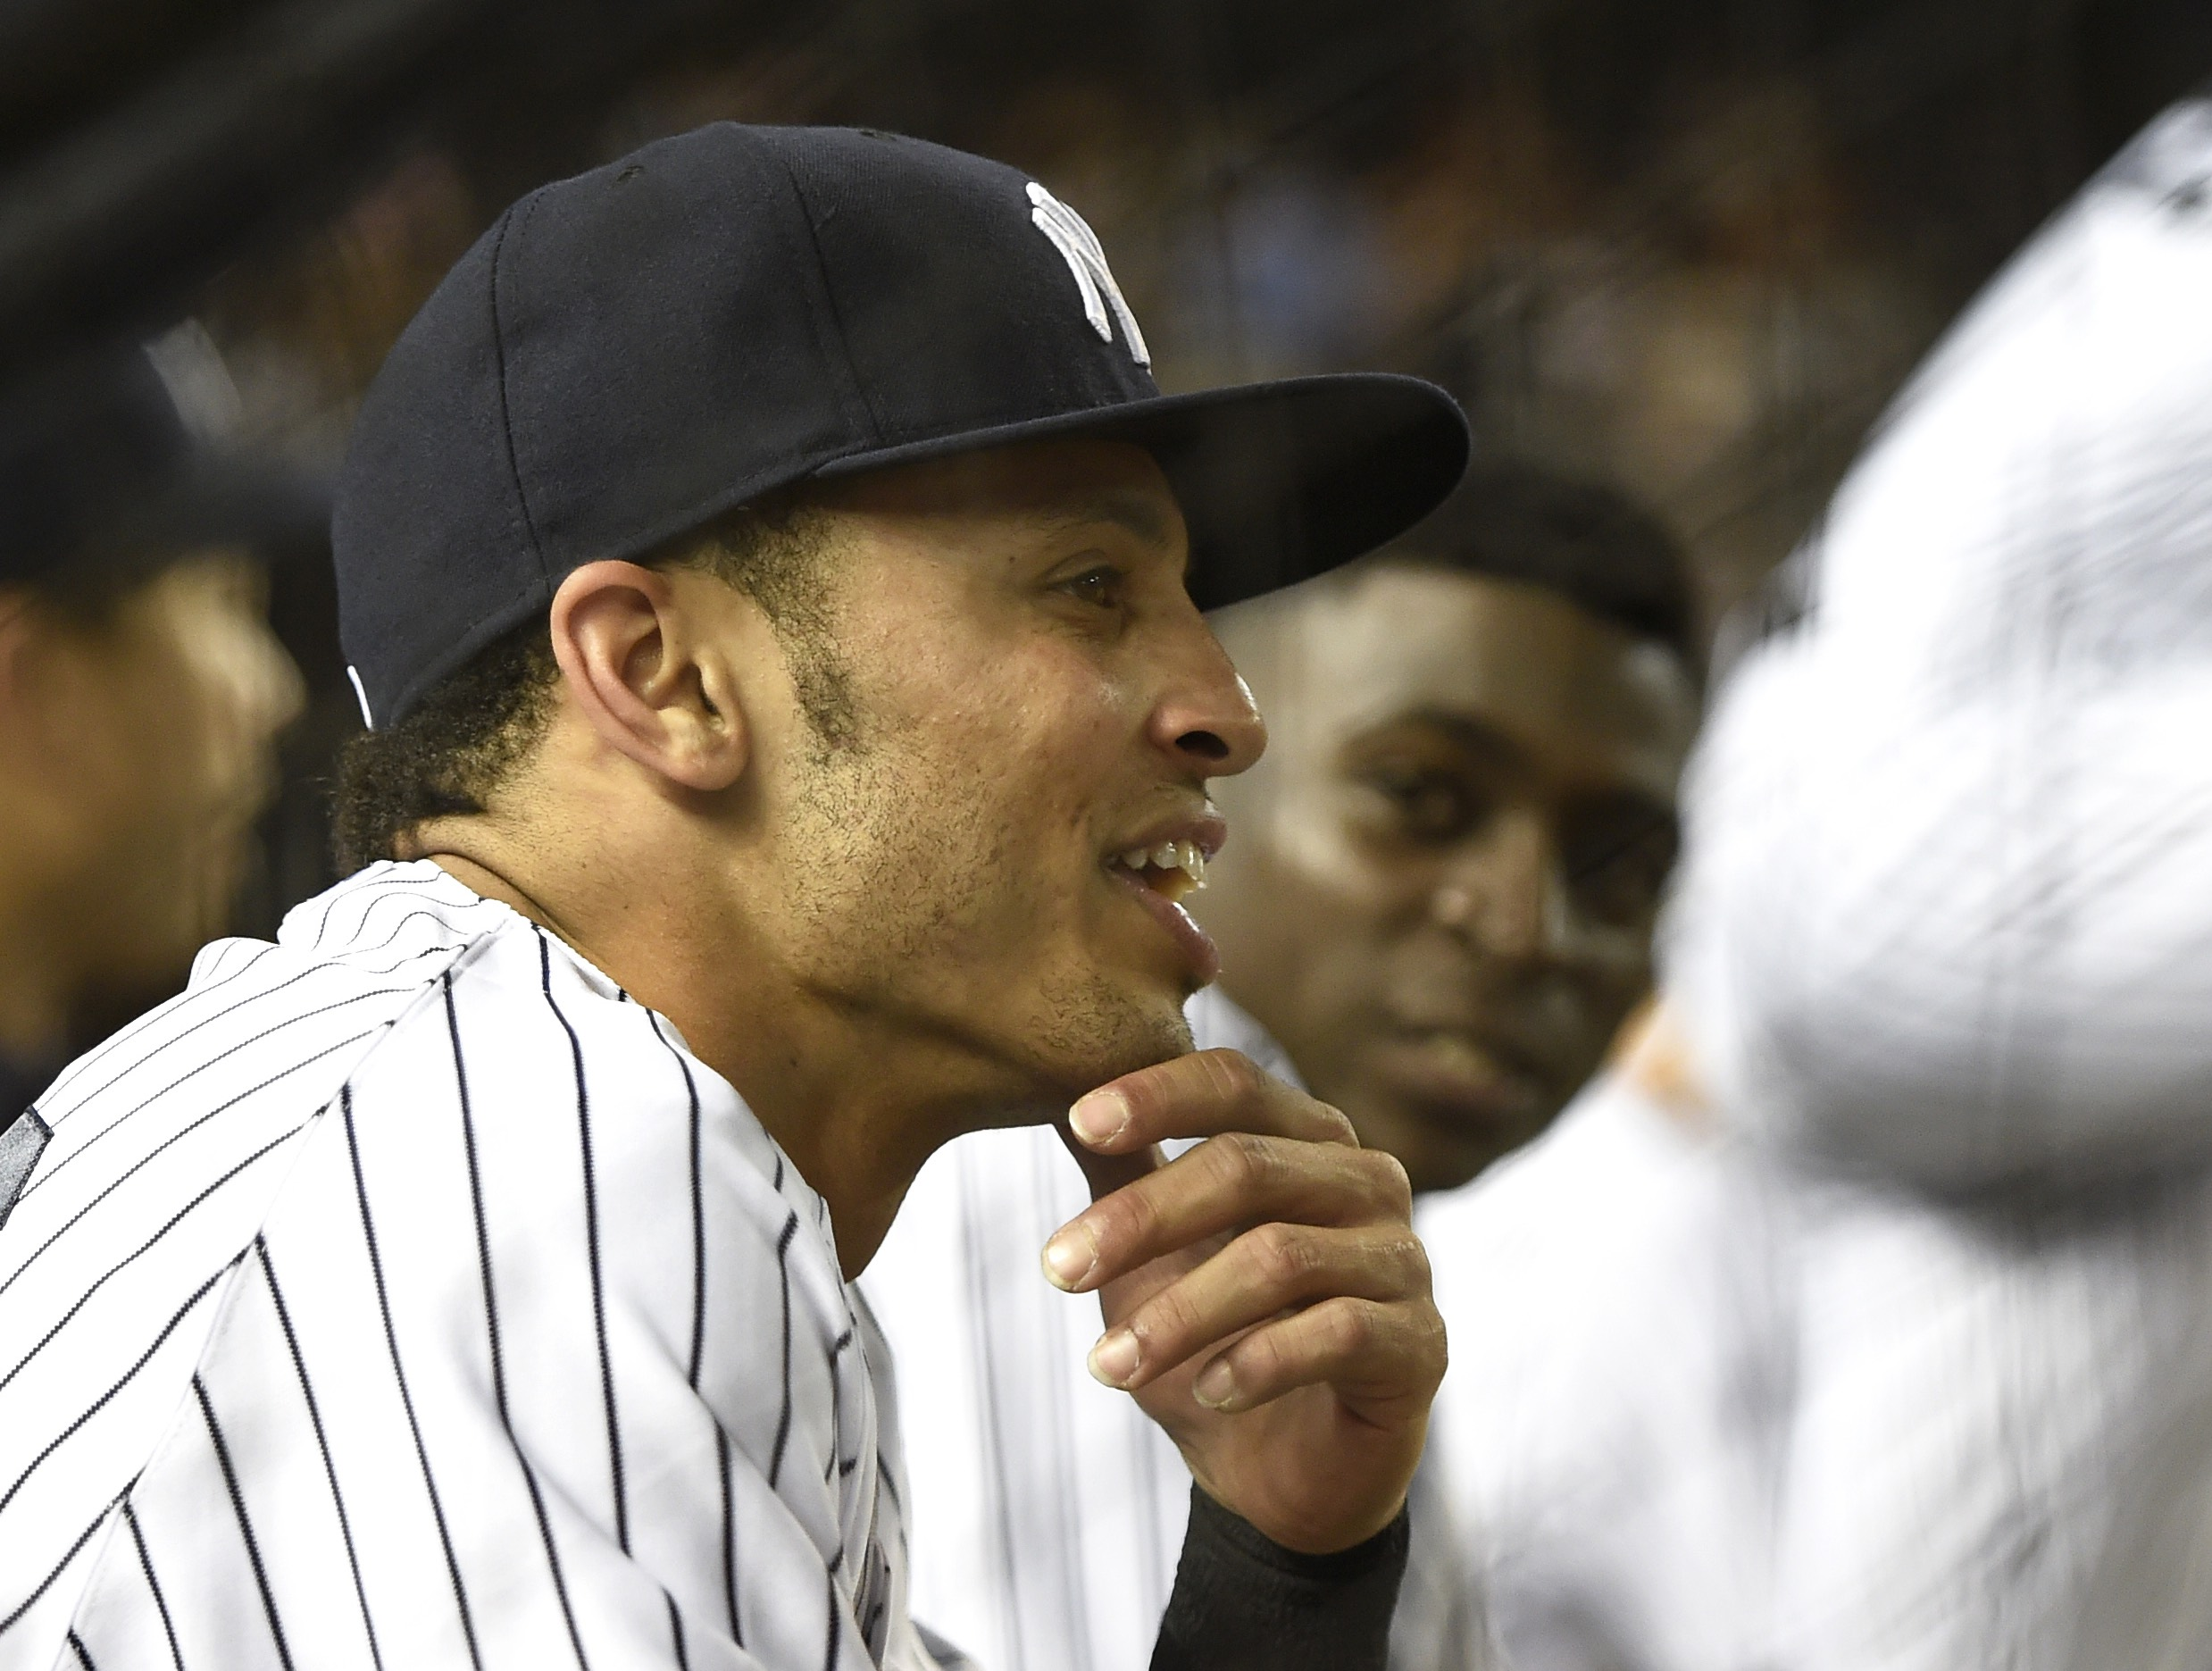 FILE- In this Sept. 4, 2015, file photo, New York Yankees' Rico Noel from the dugout during a baseball game against the Tampa Bay Rays at Yankee Stadium in New York. Will the 26-year-old speedster, whose September role is to pinch run, ever get a chance to hit, or will he join Moonlight Graham and become the 86th major league position player who never got to bat? (AP Photo/Kathy Kmonicek, File)